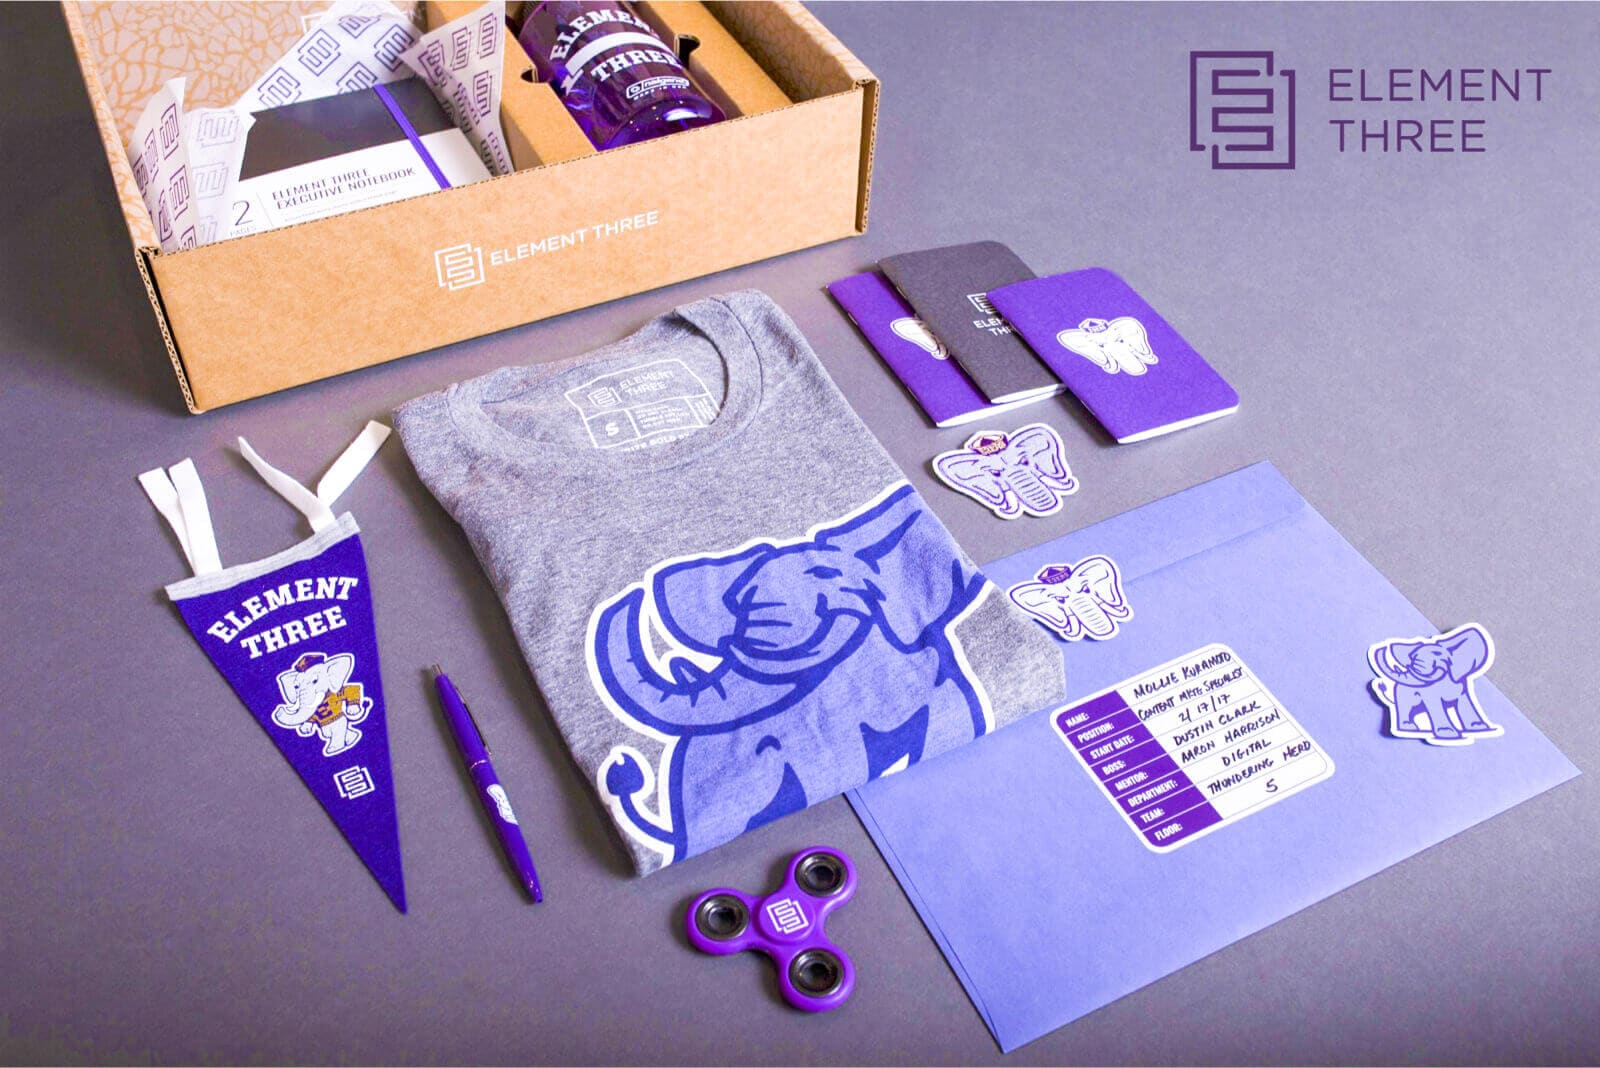 Element-new-employee-welcome-kit-for-new-hires-